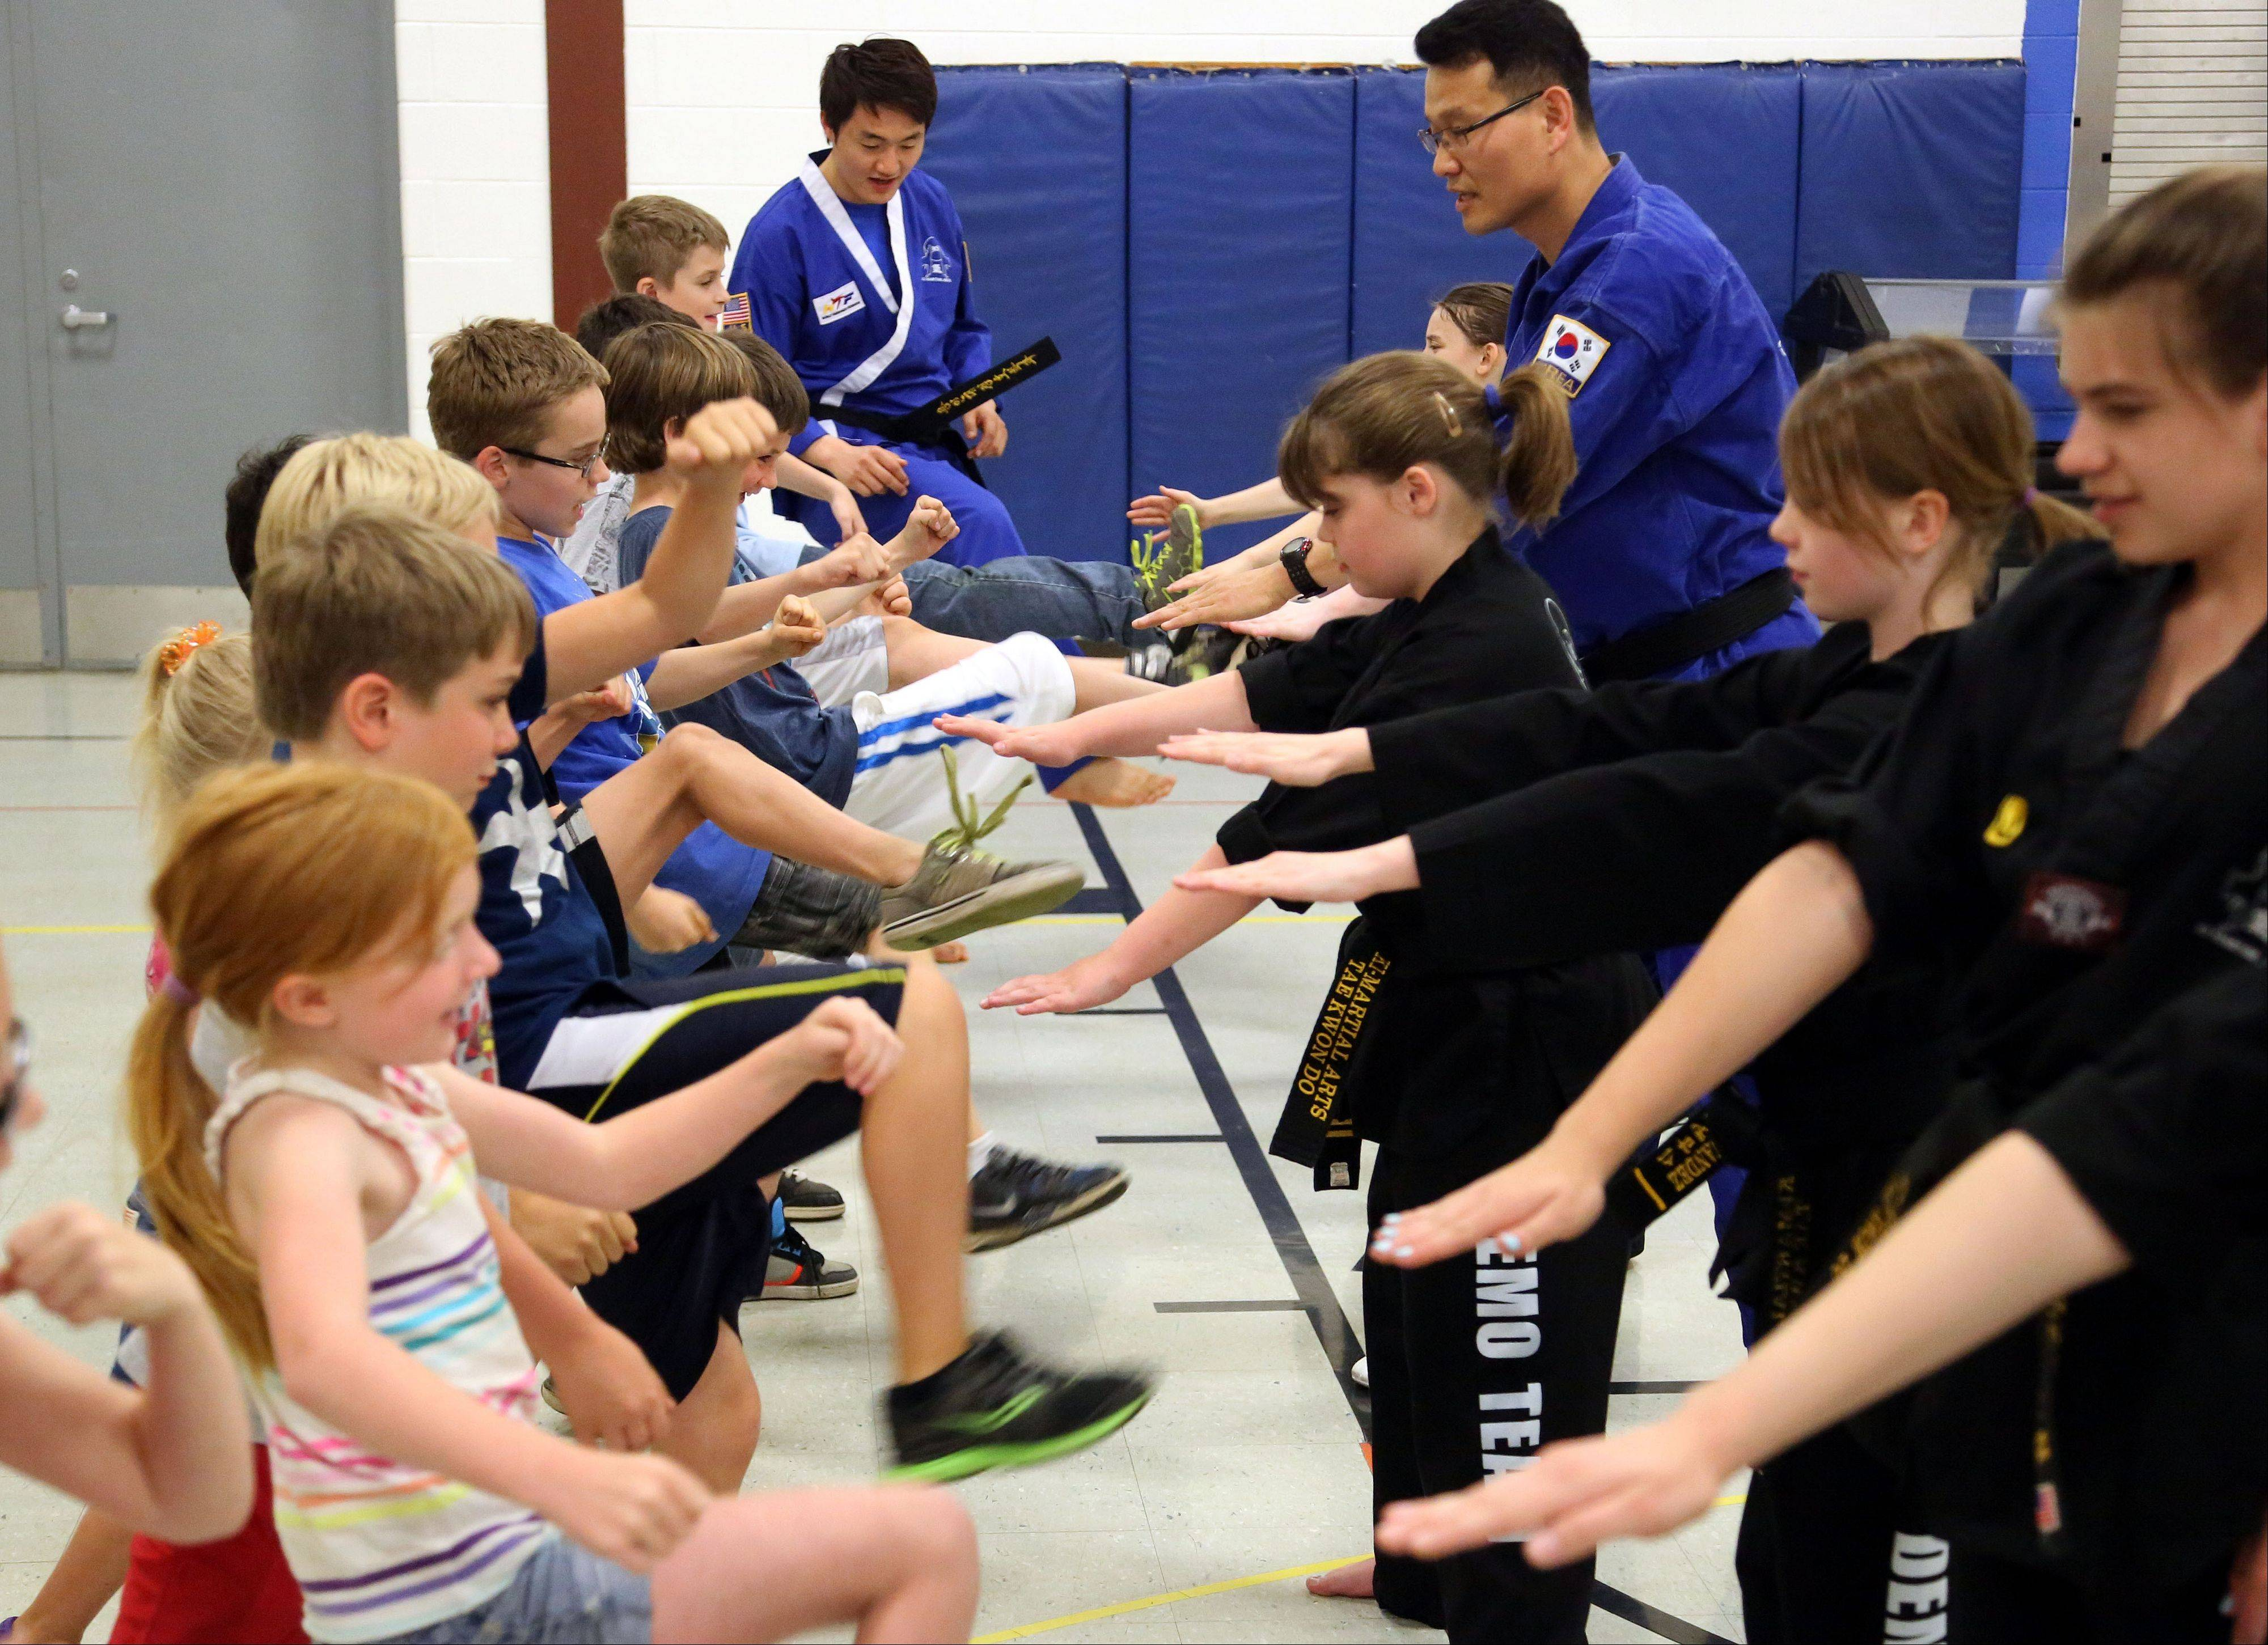 Members of Ki Martial Arts teach kids at Mechanics Grove School to kick, during an event called Learning and the Arts in Mundelein.